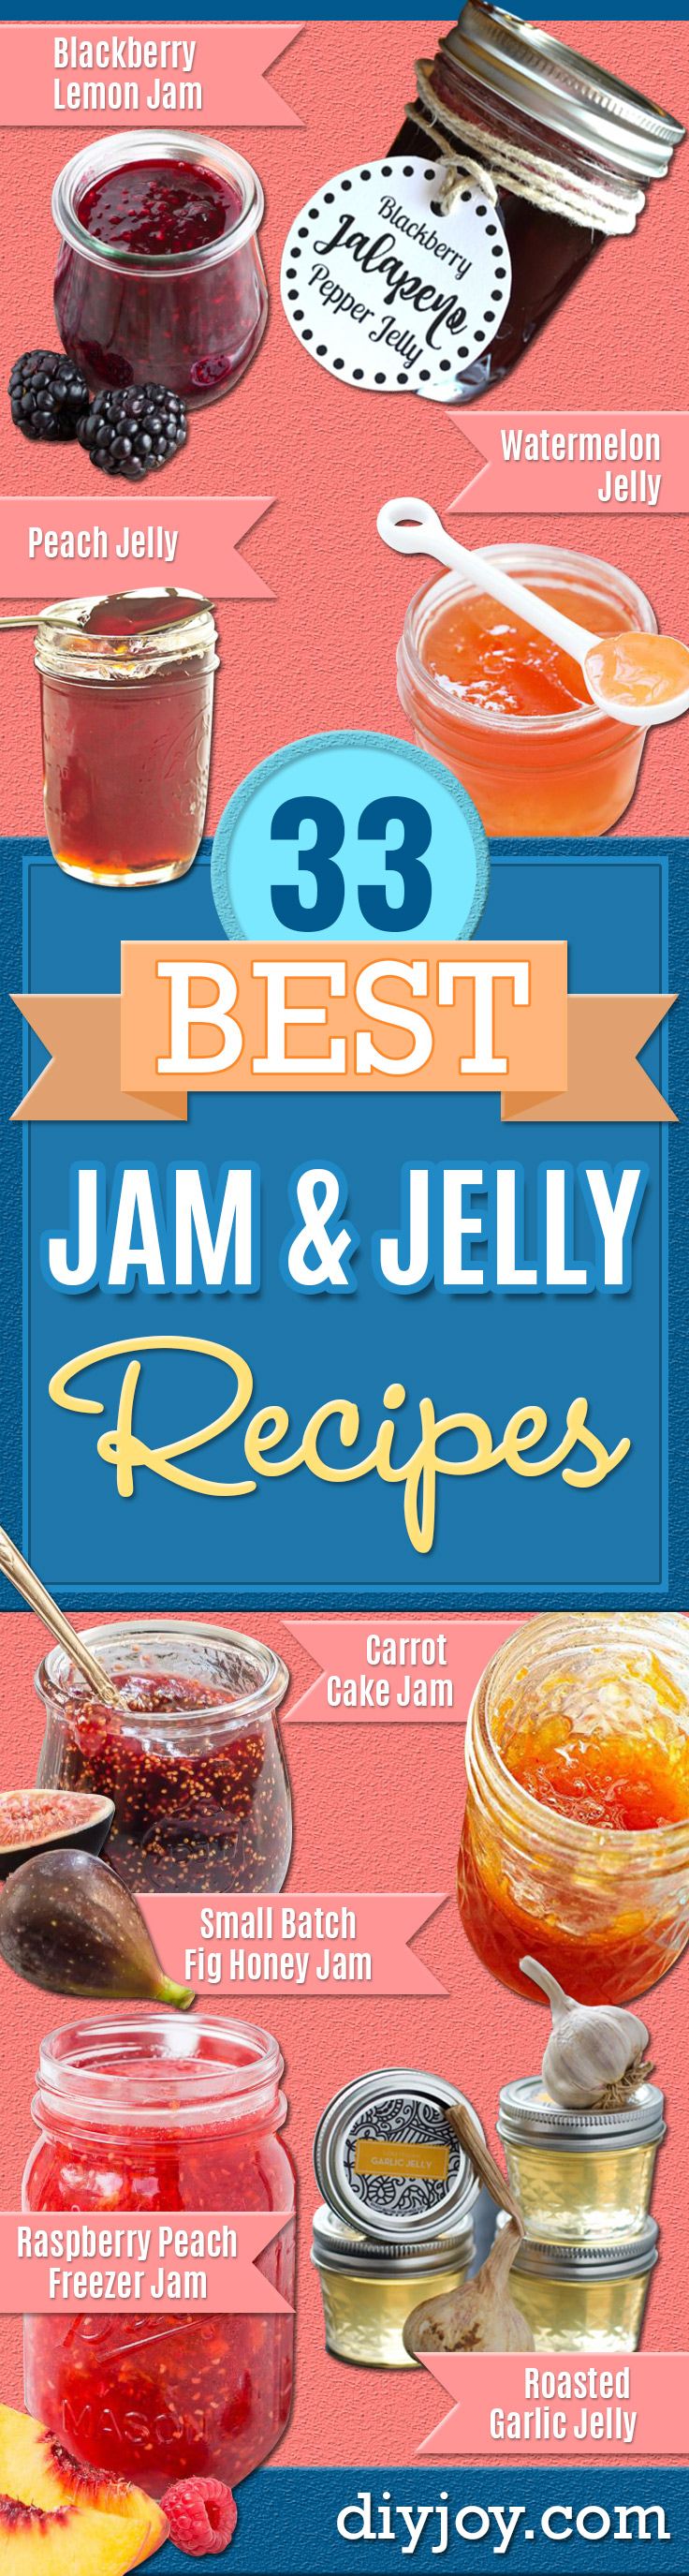 Best Jam and Jelly Recipes - Homemade Recipe Ideas For Canning - Easy and Unique Jams and Jellies Made With Strawberry, Raspberry, Blackberry, Peach and Fruit - Healthy, Sugar Free, No Pectin, Small Batch, Savory and Freezer Recipes http://diyjoy.com/jam-jelly-recipes